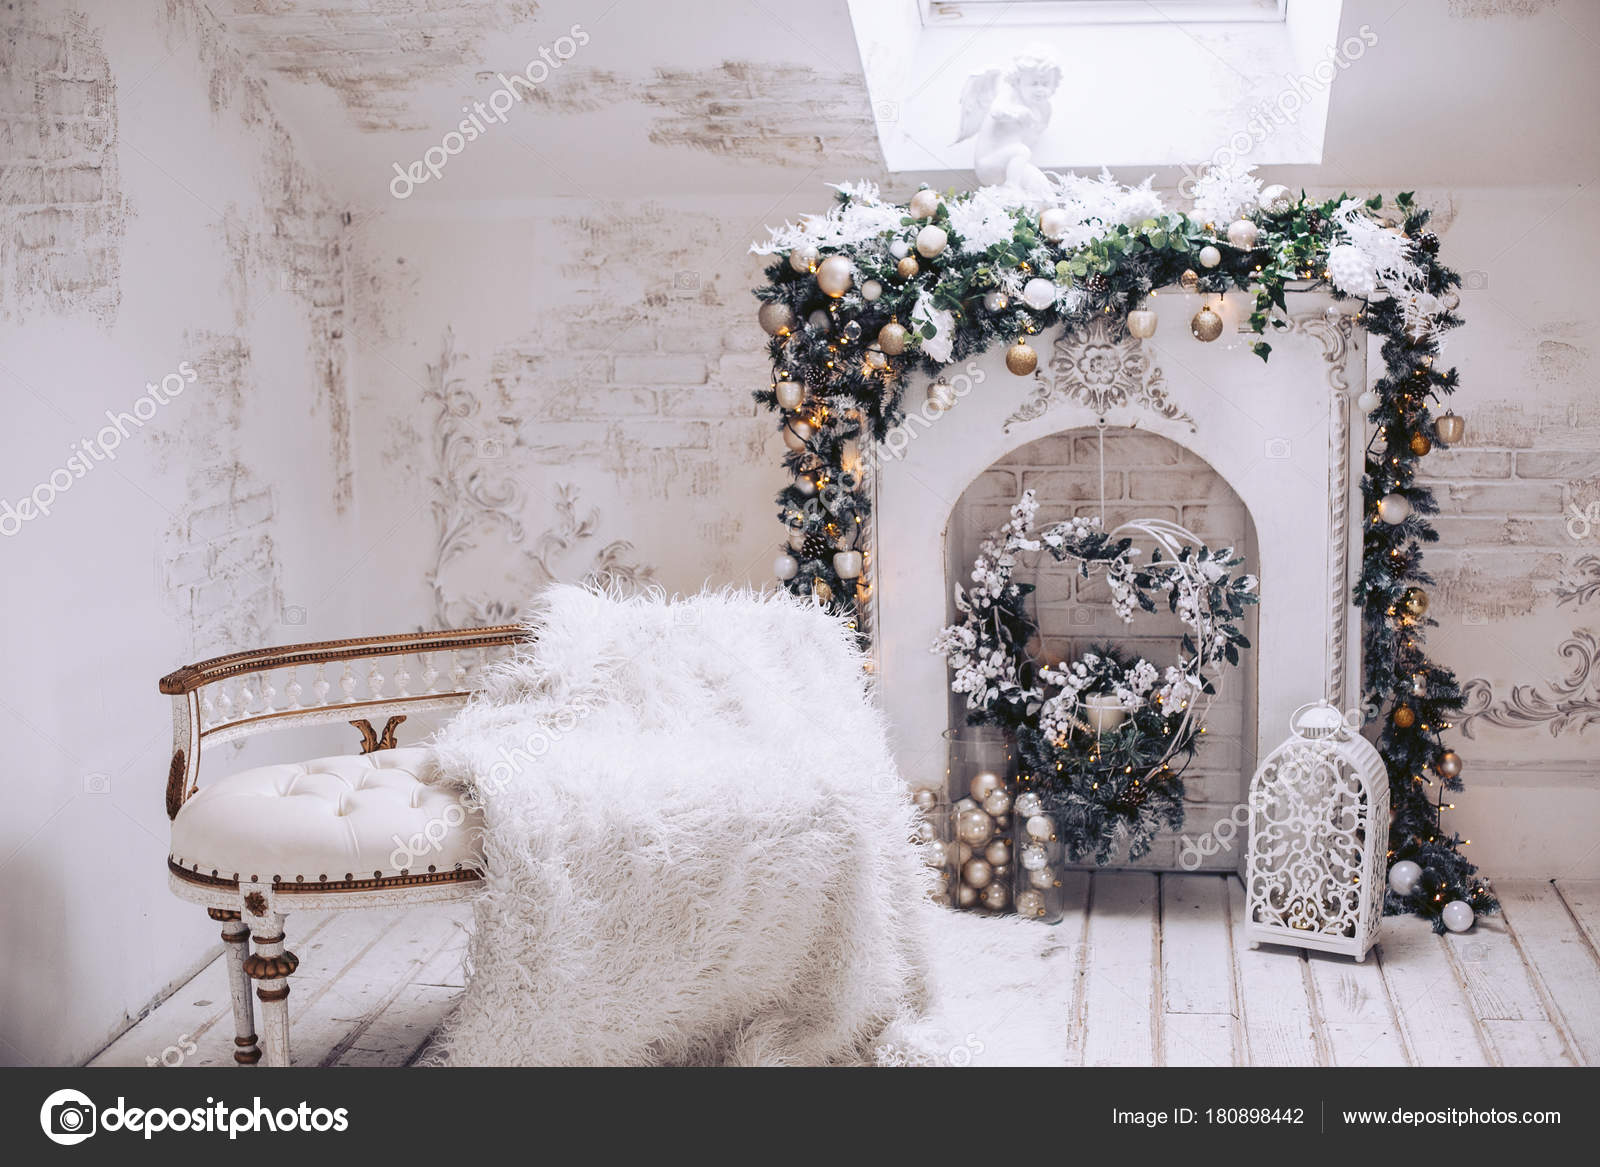 White exclusive sofa with gilding on the background of the fireplace. Christmas decorations from Christmas